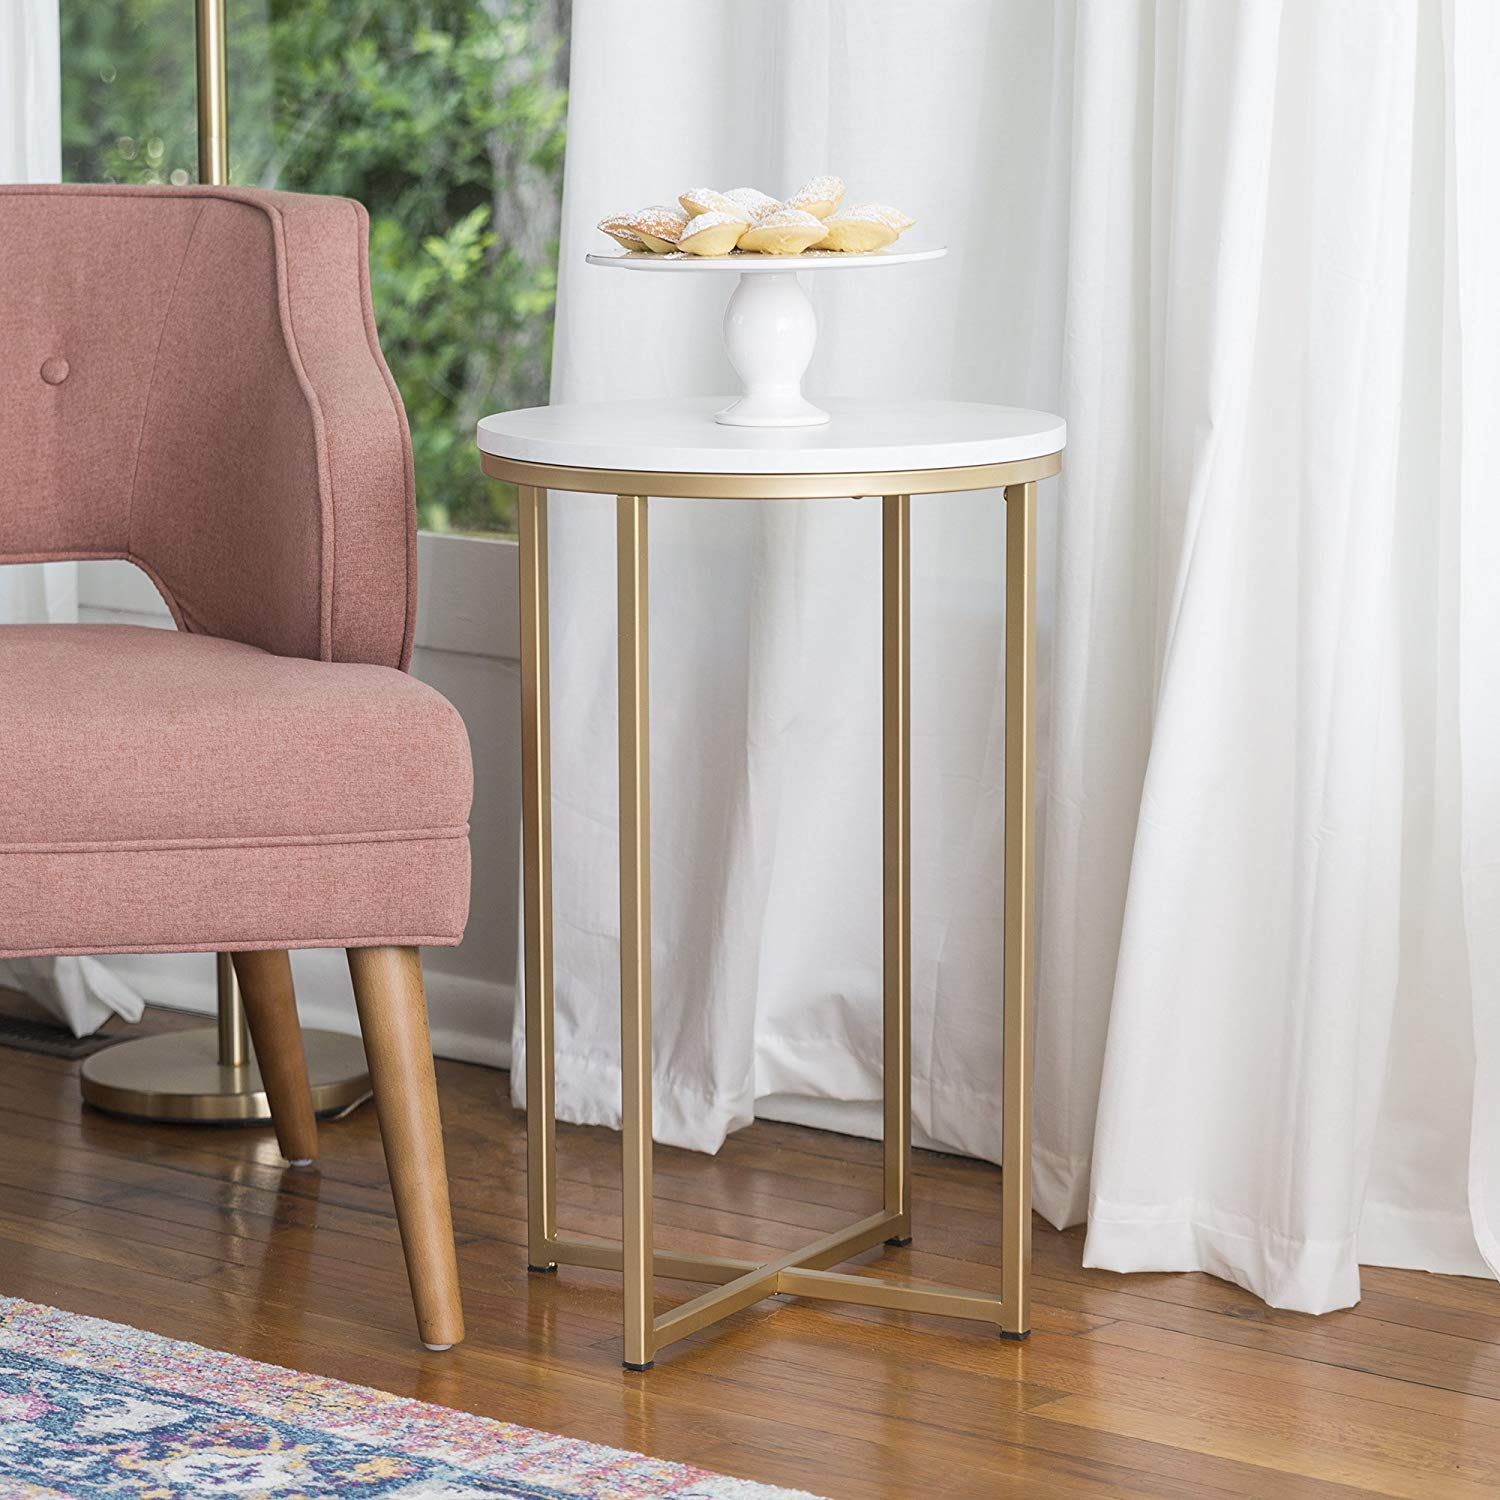 furniture round side table faux marble gold pink accent kitchen dining ballard bar stools drum chair antique oak with drawer chest tables ikea outdoor protector battery lamps